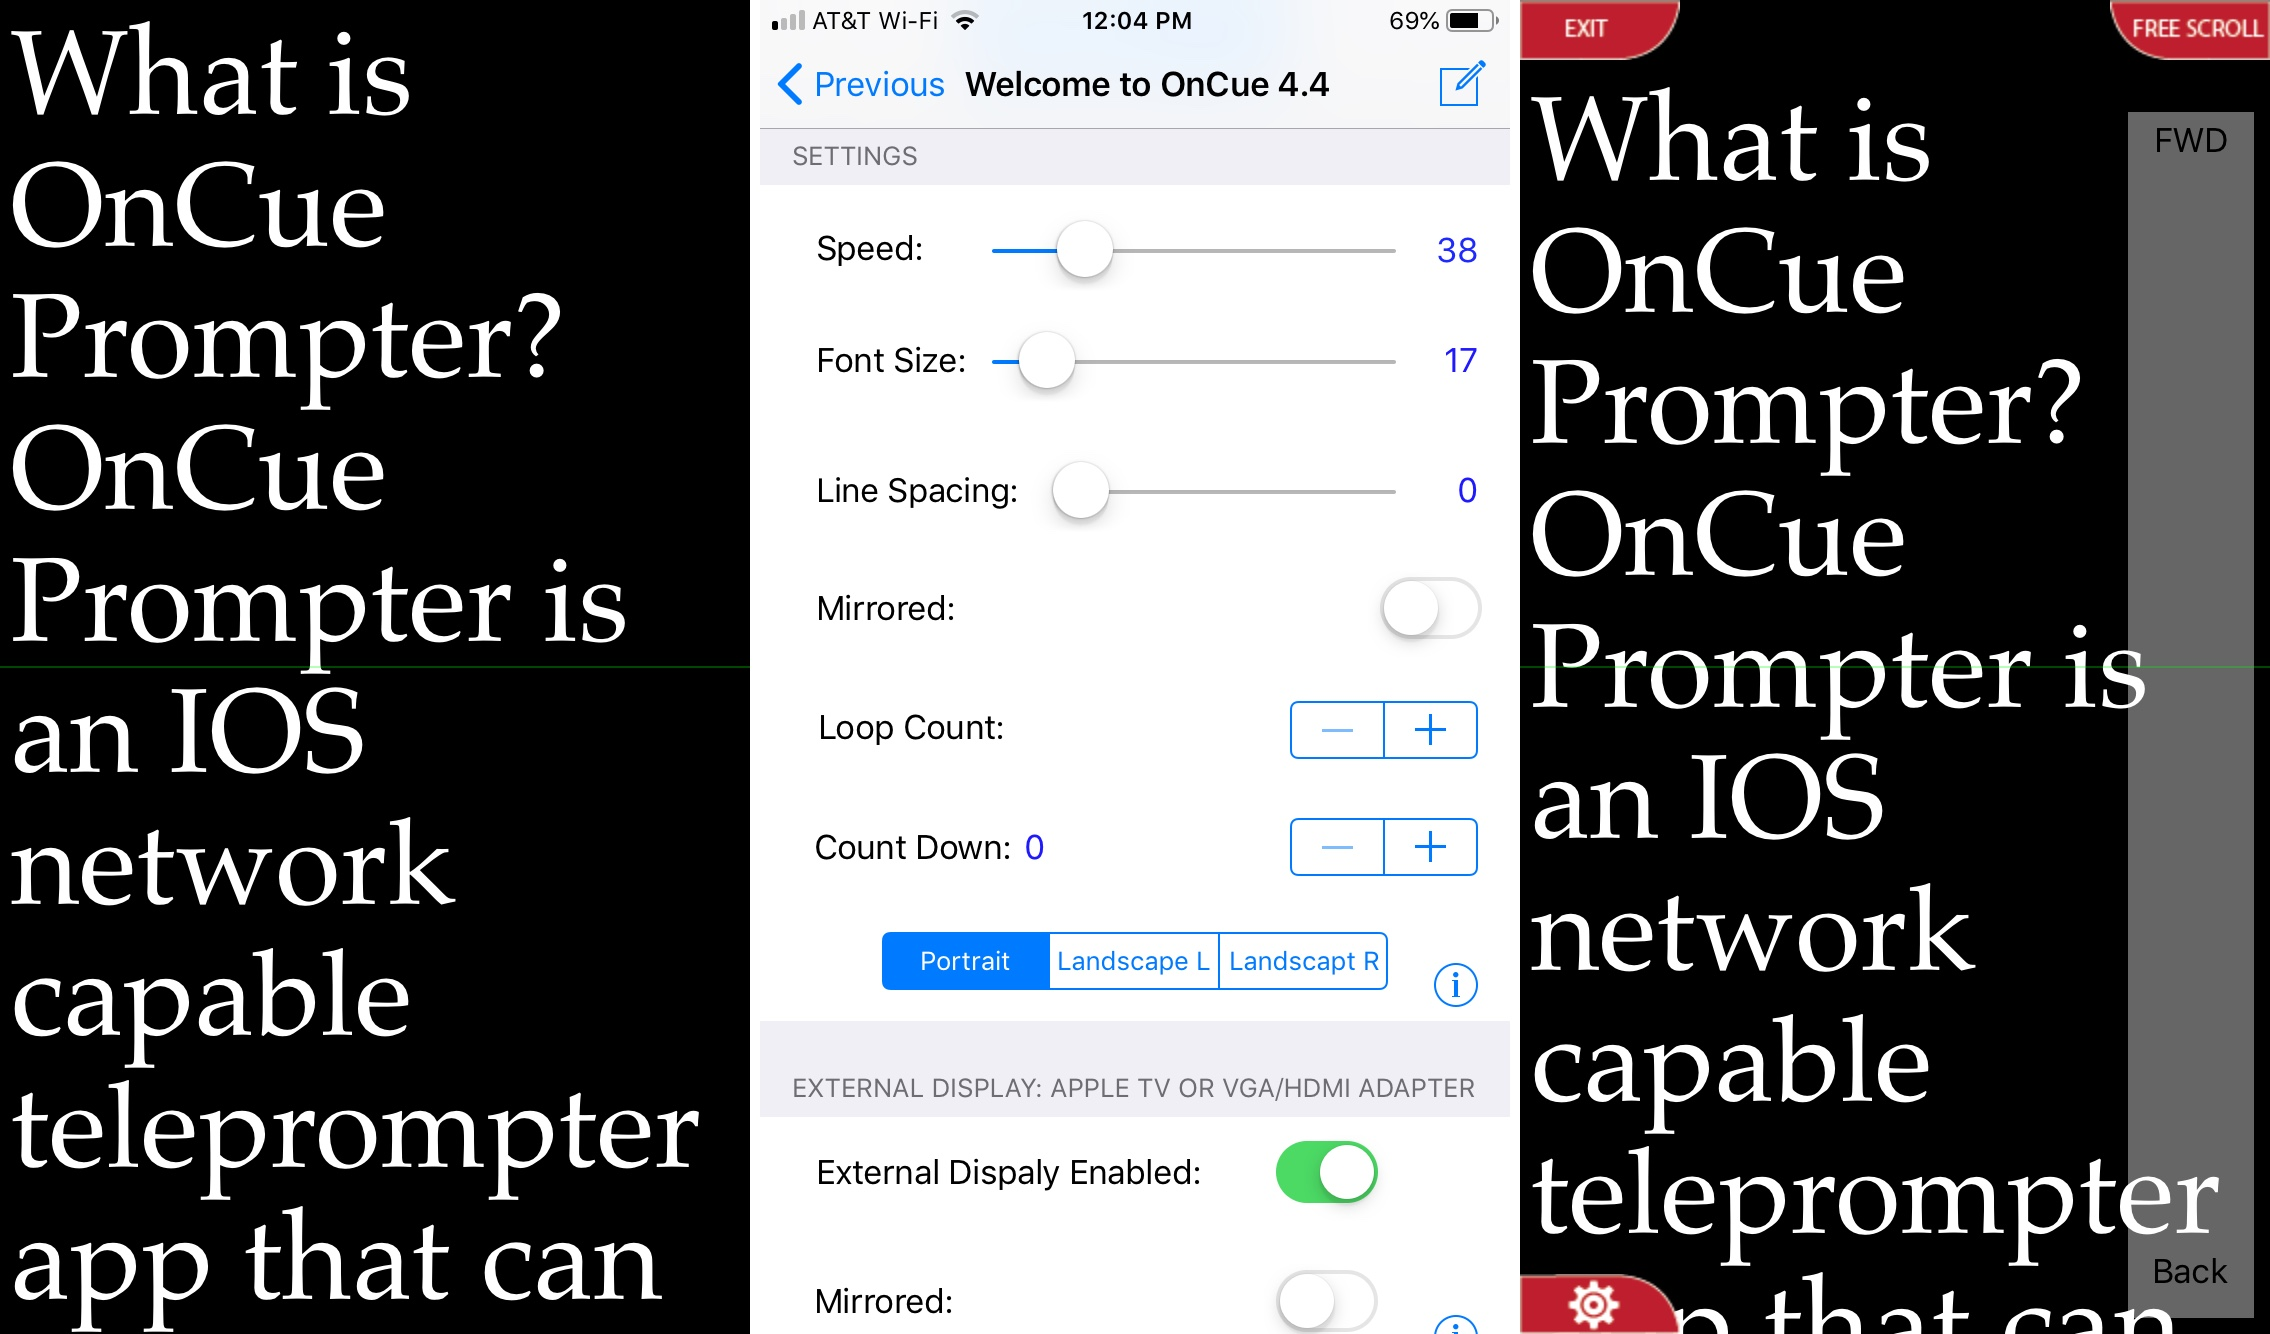 OnCue Prompter on iPhone